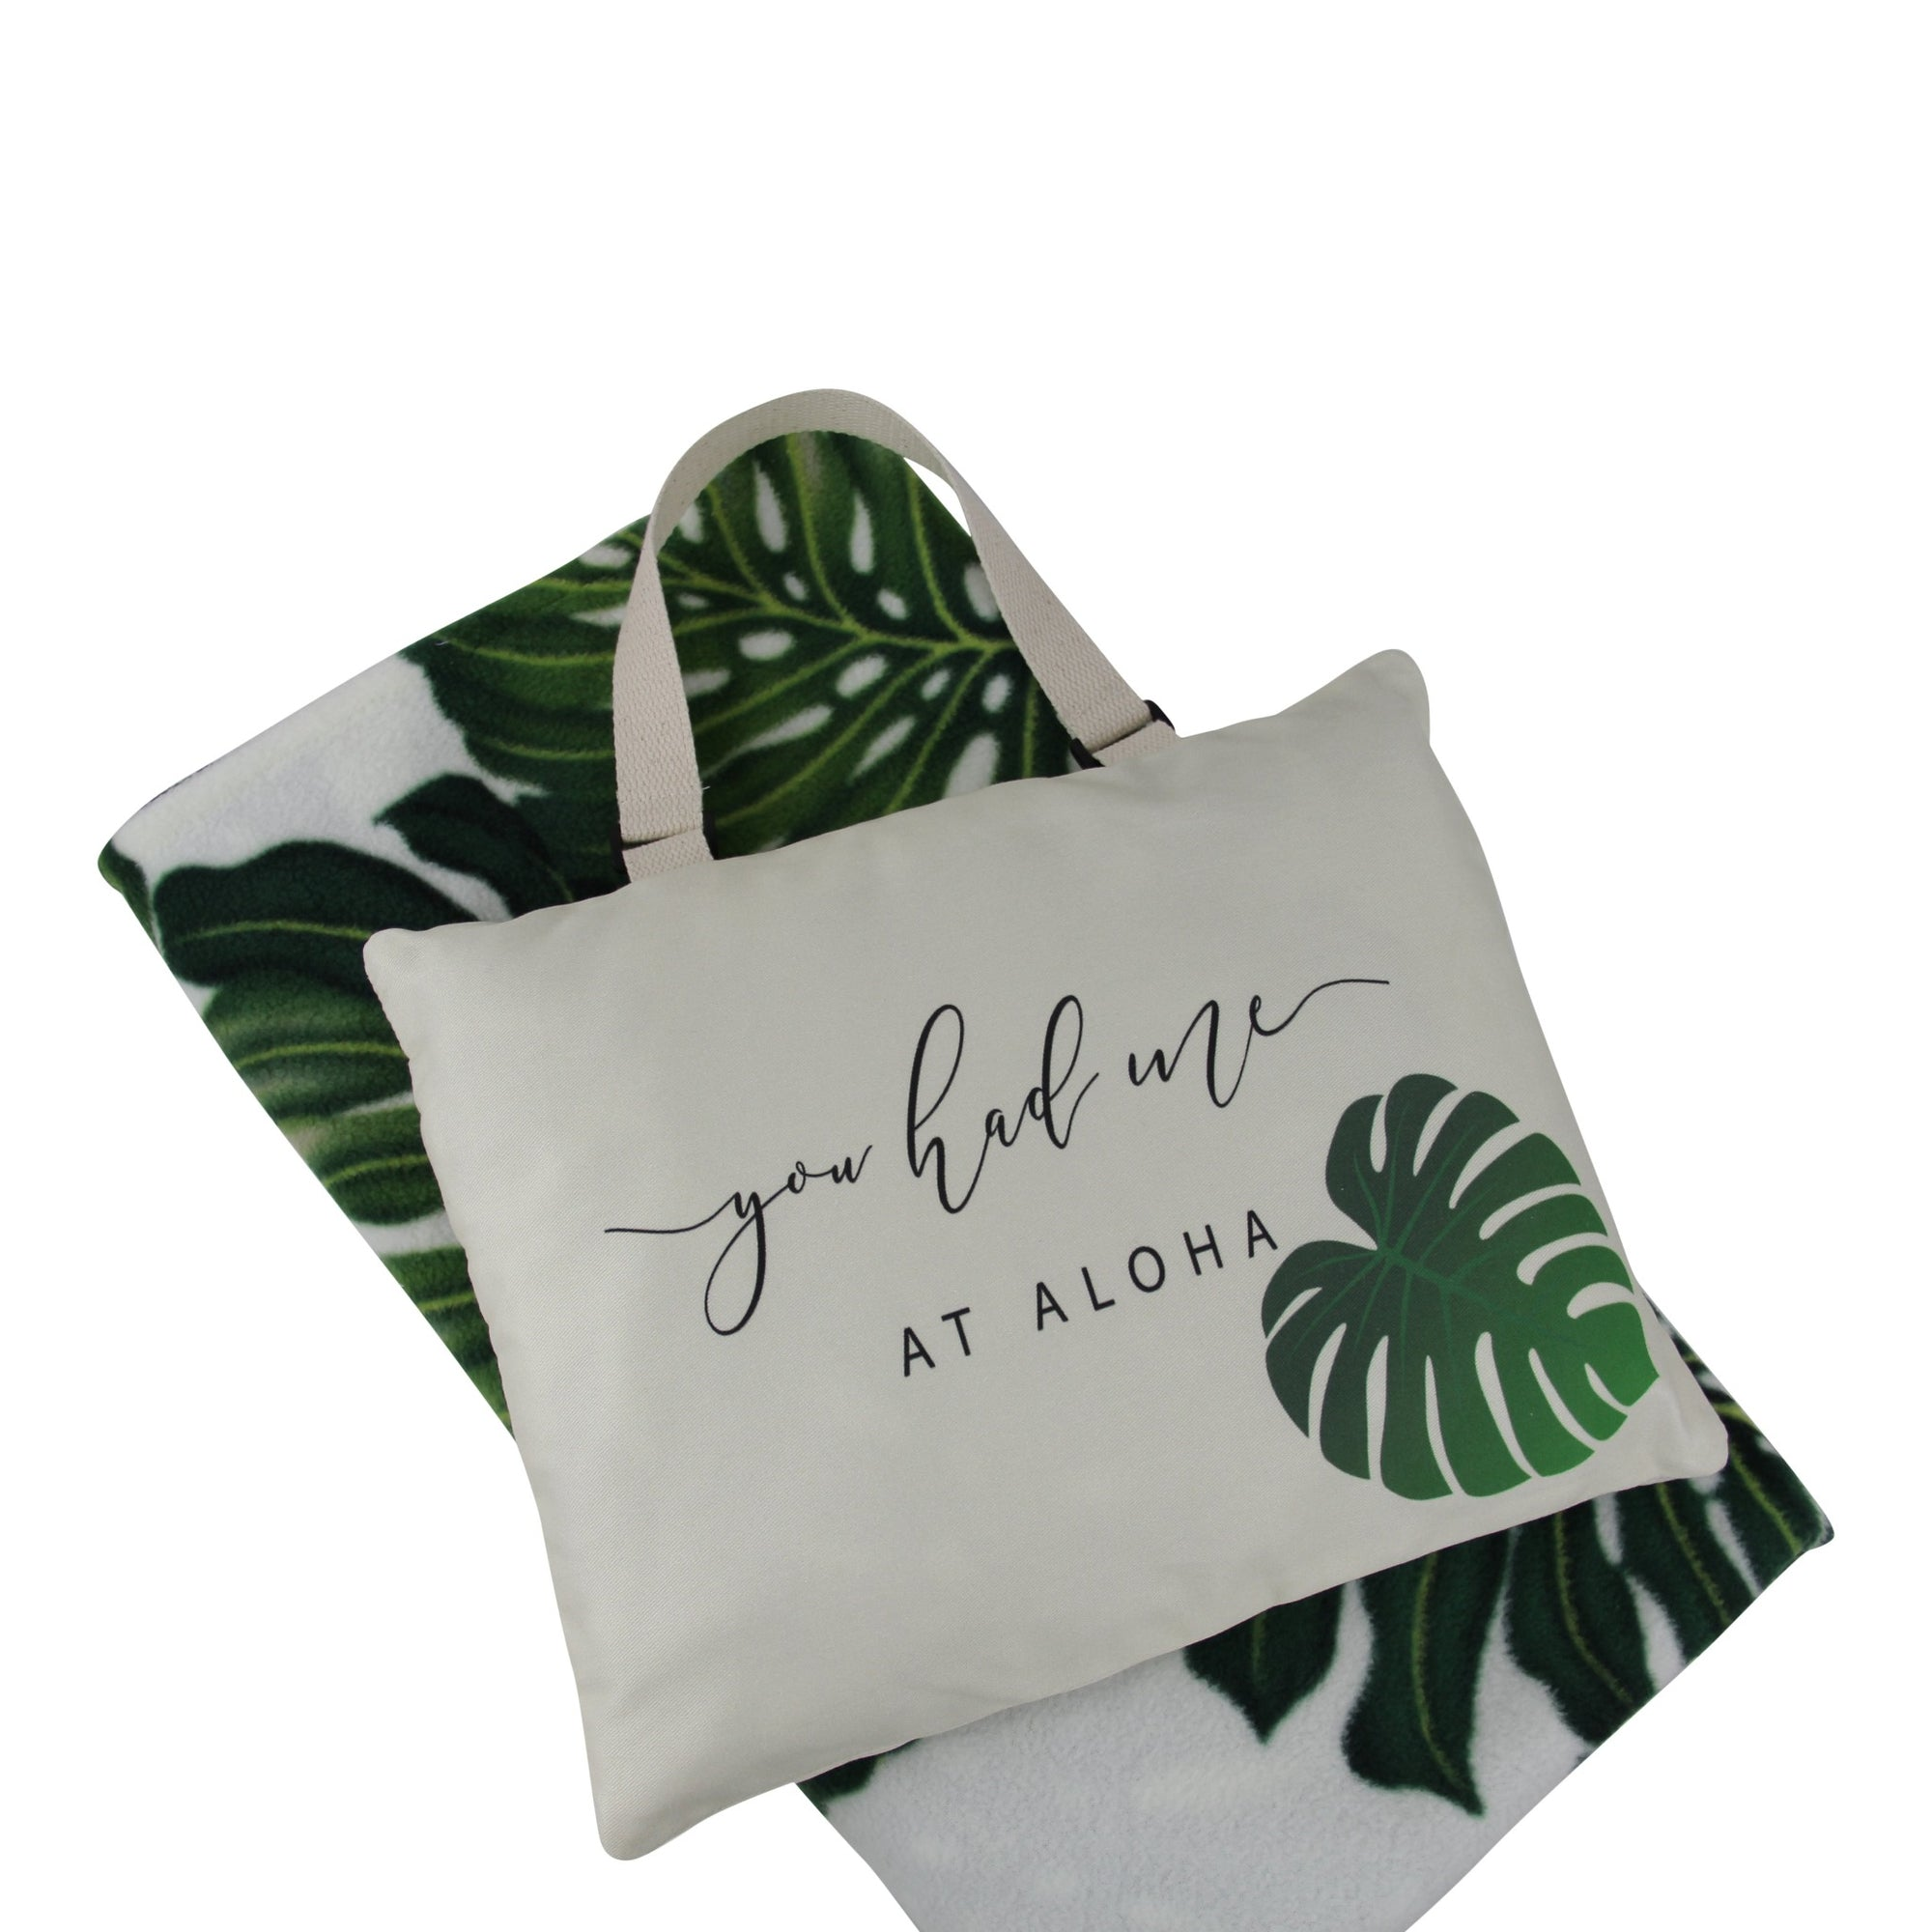 Hali'i Travel blanket set-You had me at Aloha